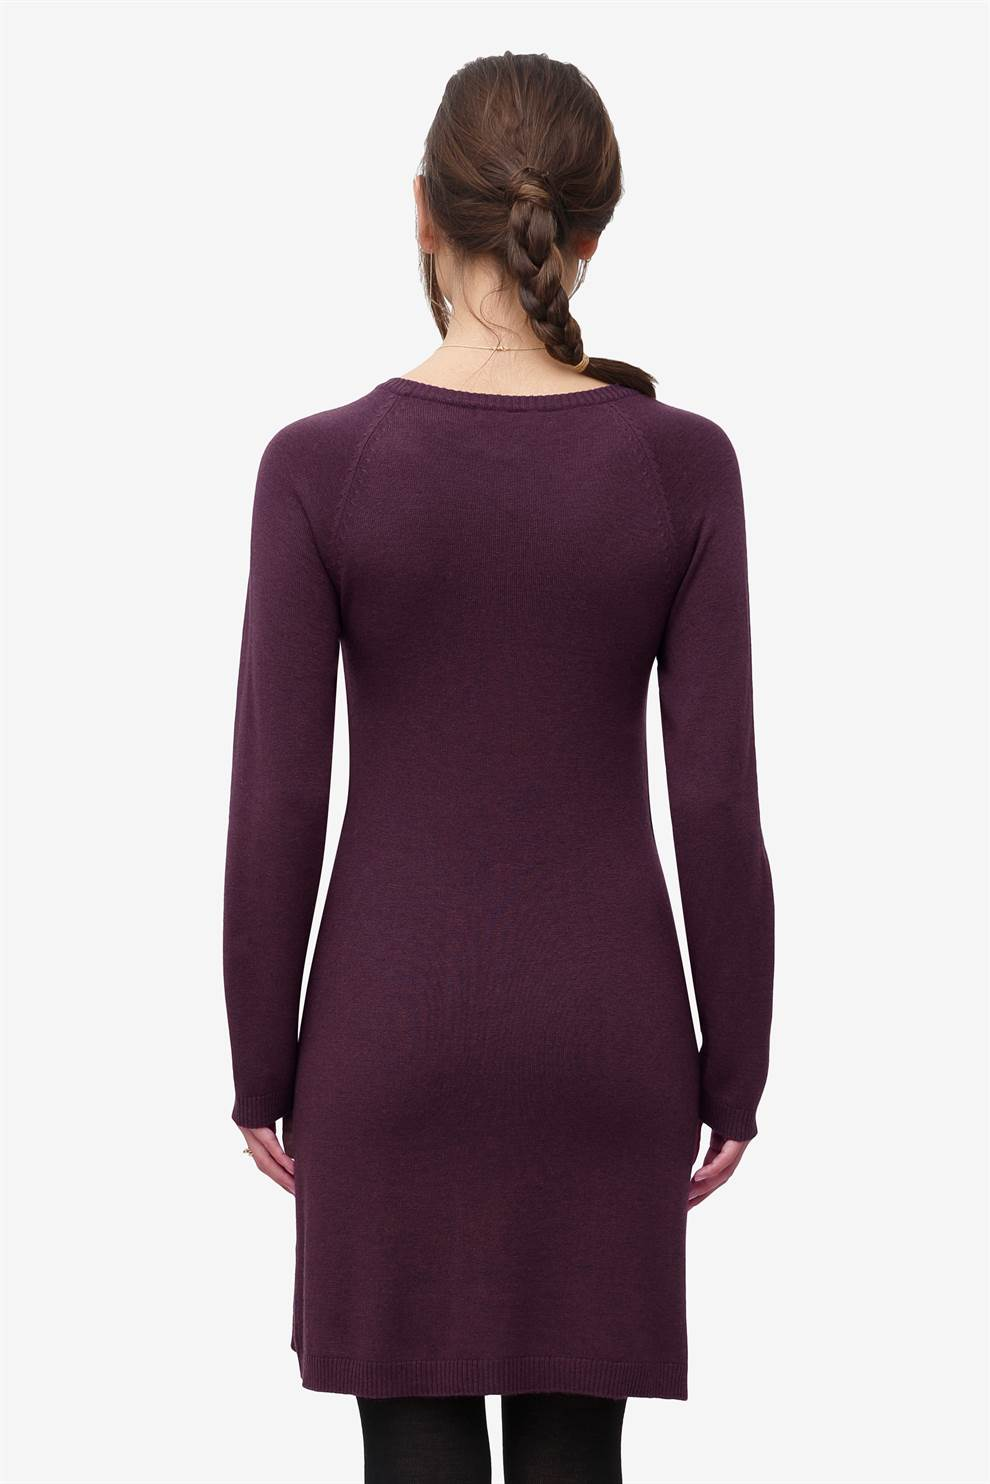 Burgundy nursing dress with button opening  in wool, seen from behind